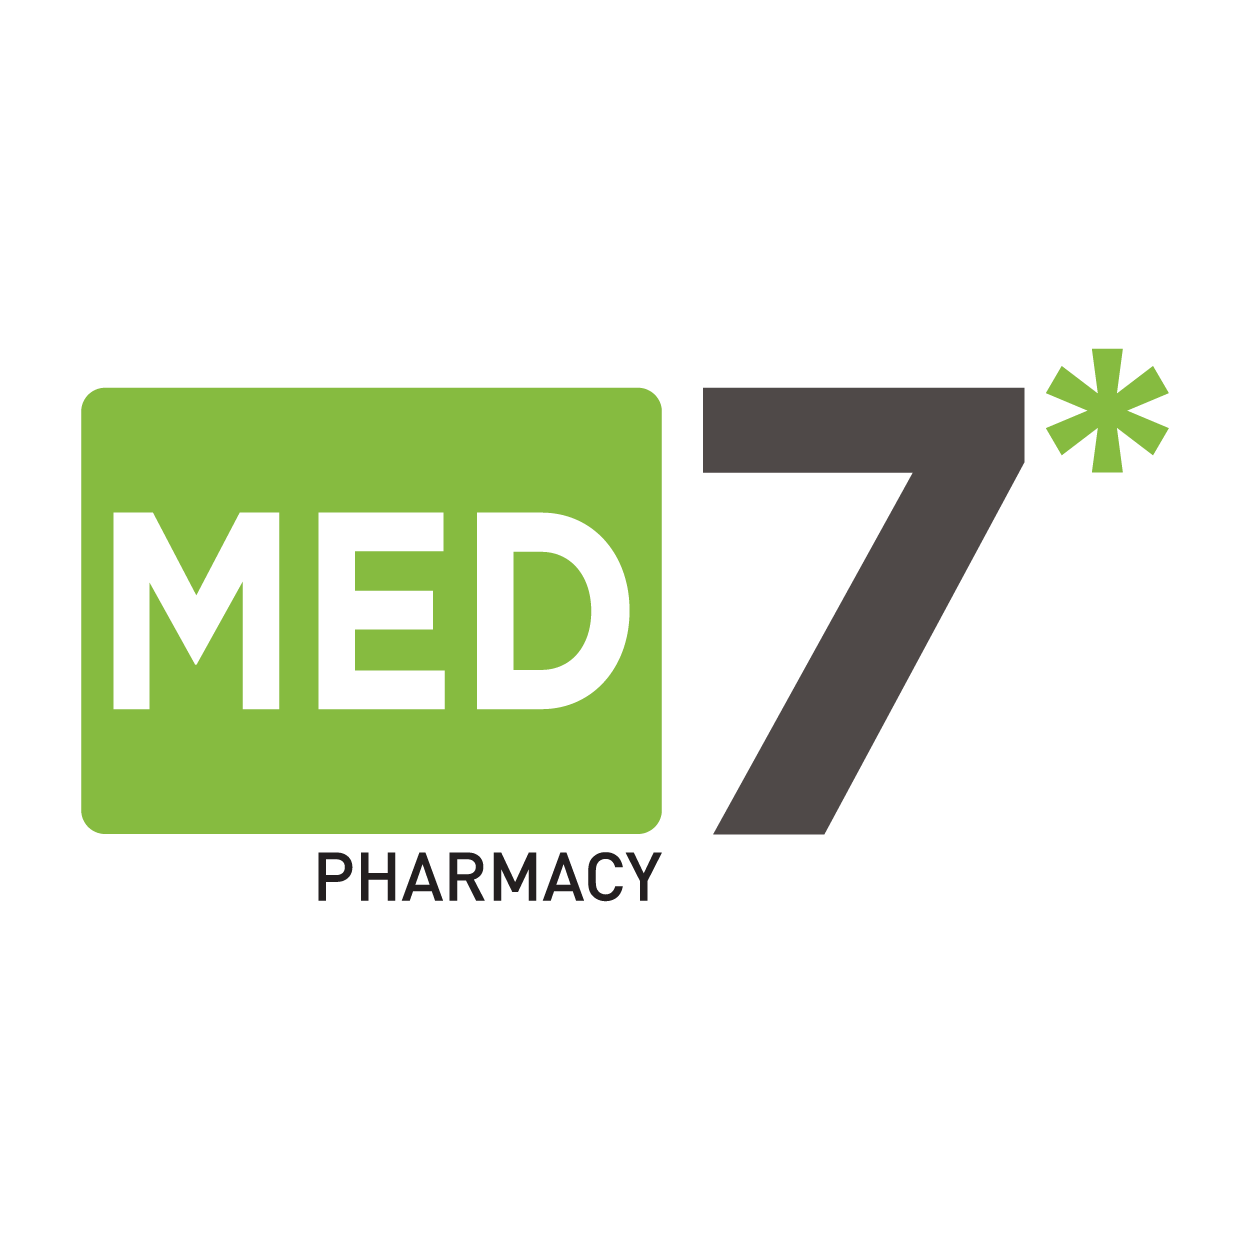 Med 7 Pharmacy